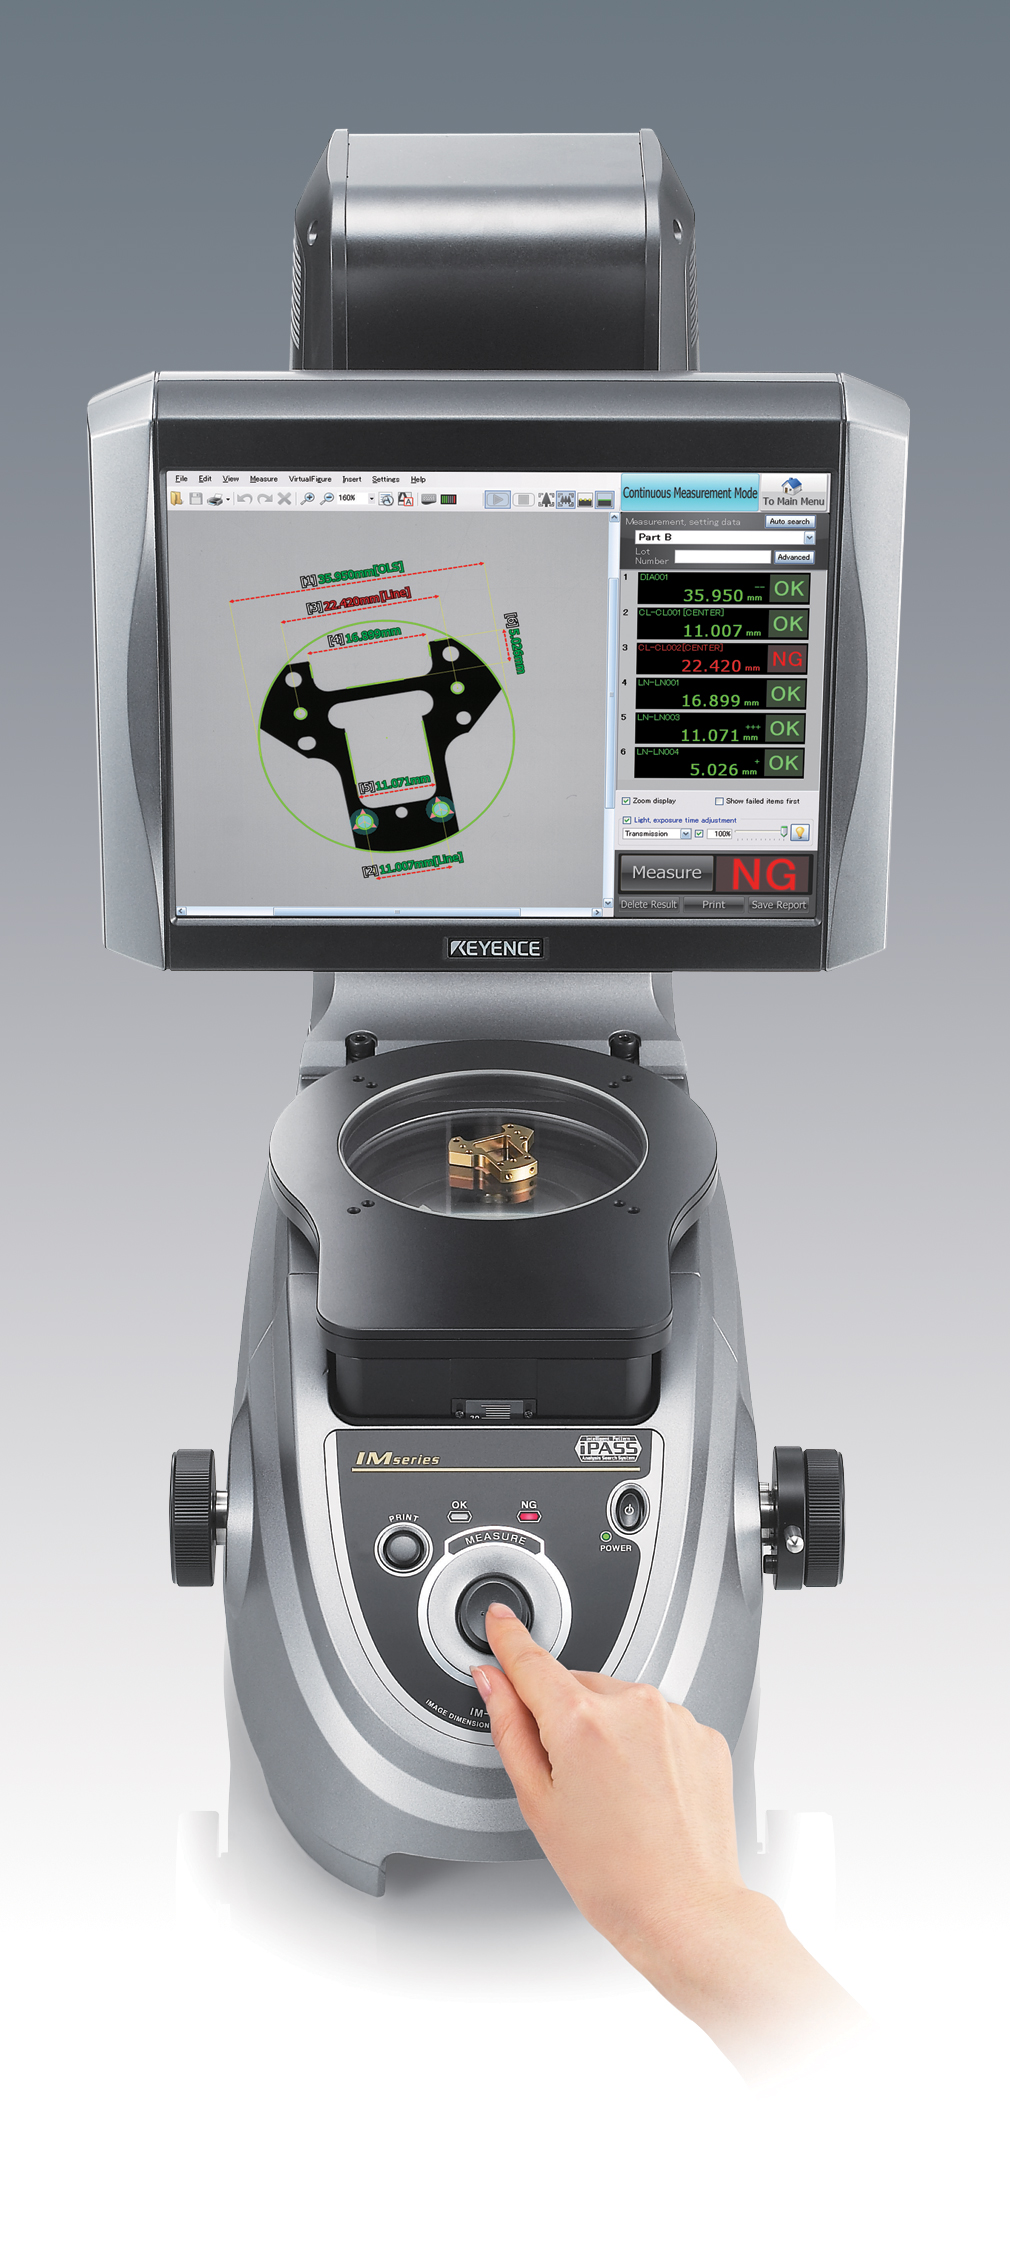 Advances In 3d Metrology And Automation Keyence Wiring Diagram Image Dimension Measuring Systems From Can Measure Up To 50 Features Only A Few Seconds On Some Of Leathermans More Complex Parts